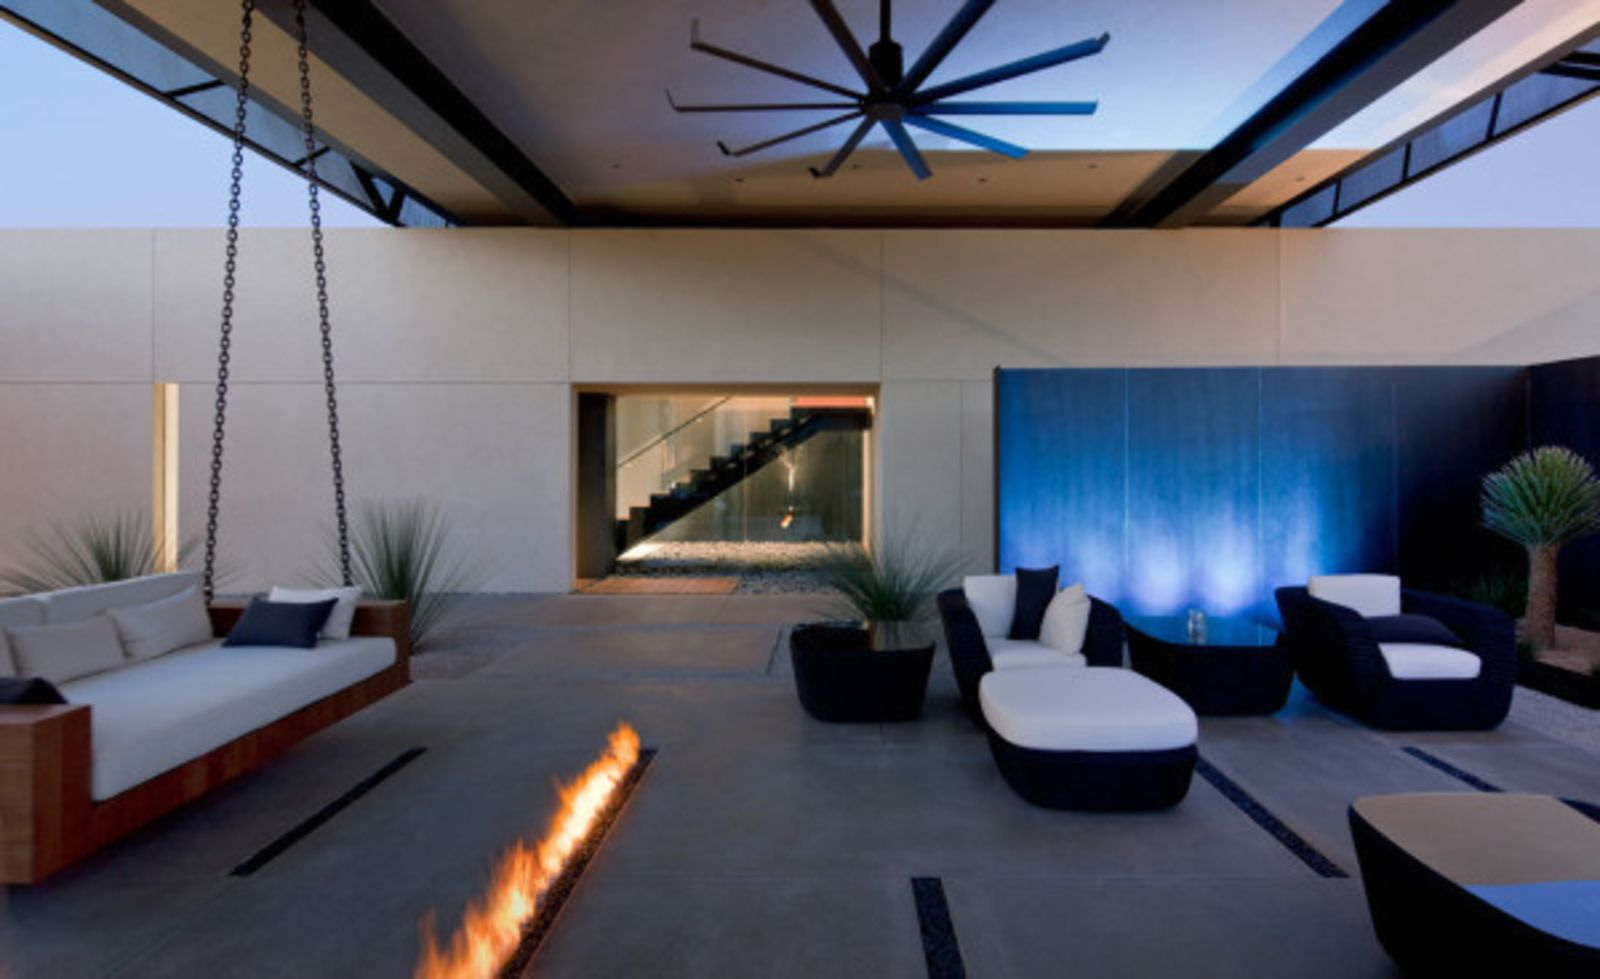 10 MODERN OUTDOOR SPACES WITH SWINGS FOR RELAXING | Outdoor living ...